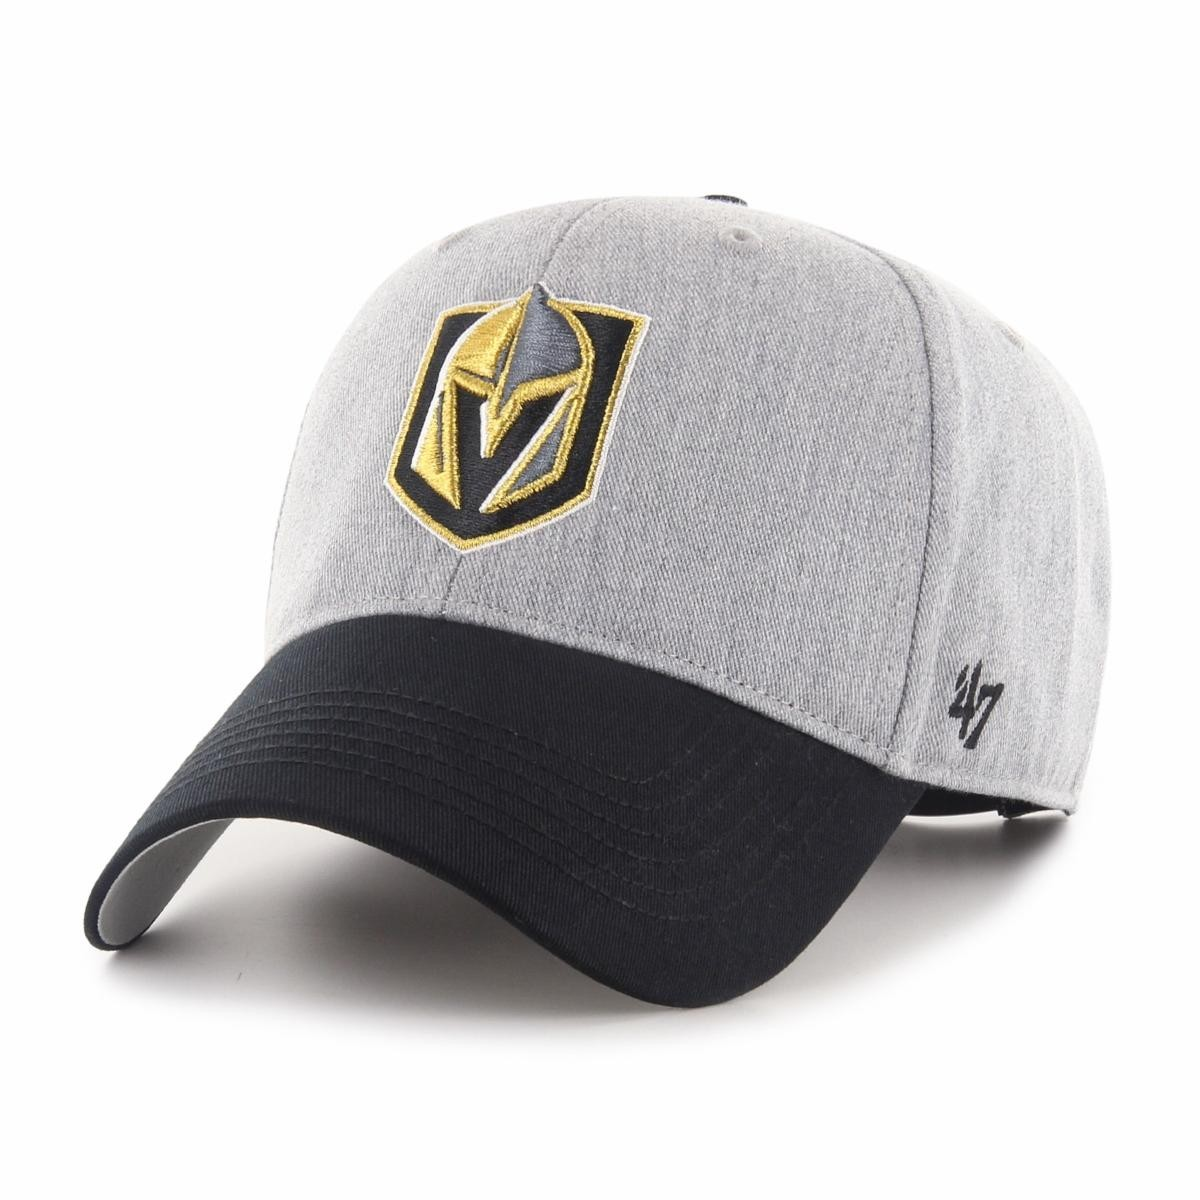 BRAND 47 Vegas Golden Knights Palomino TT Adjustable Snapback